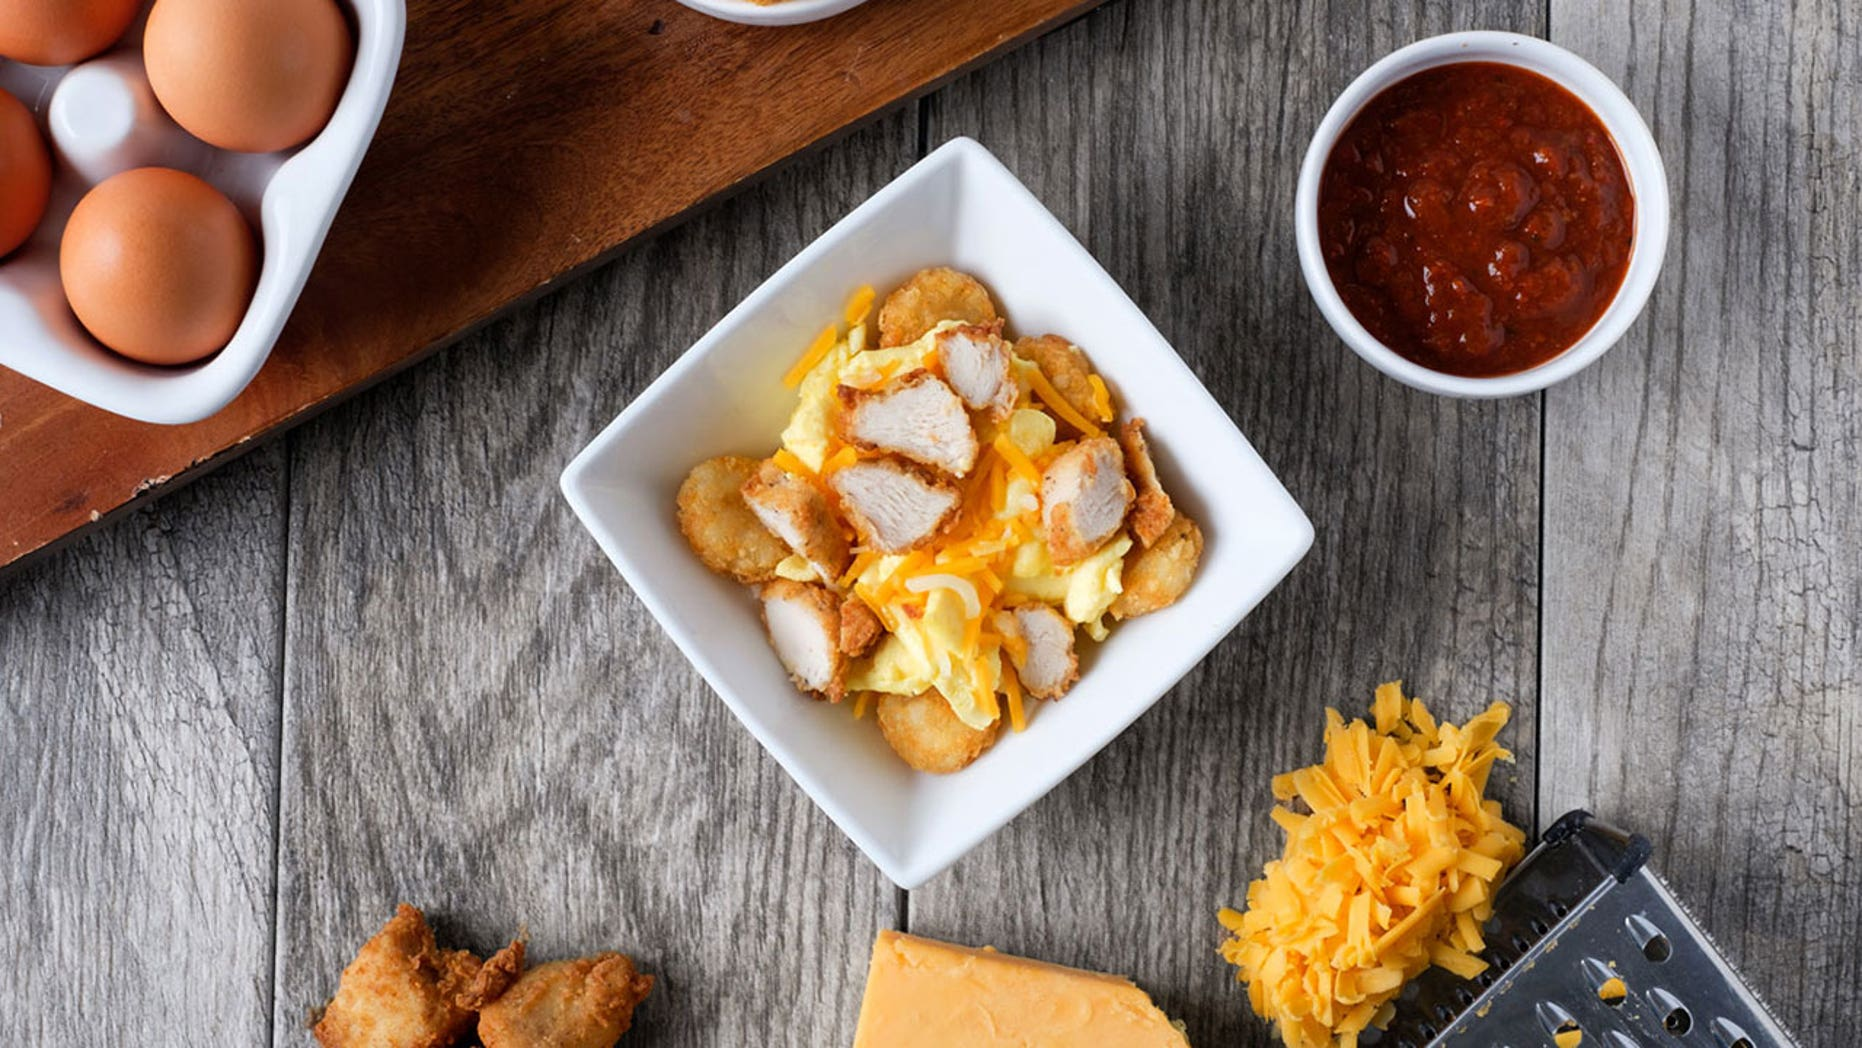 Chick-fil-A announced its new Hash Brown Scrambles on Monday, but they come at the cost of another breakfast item.